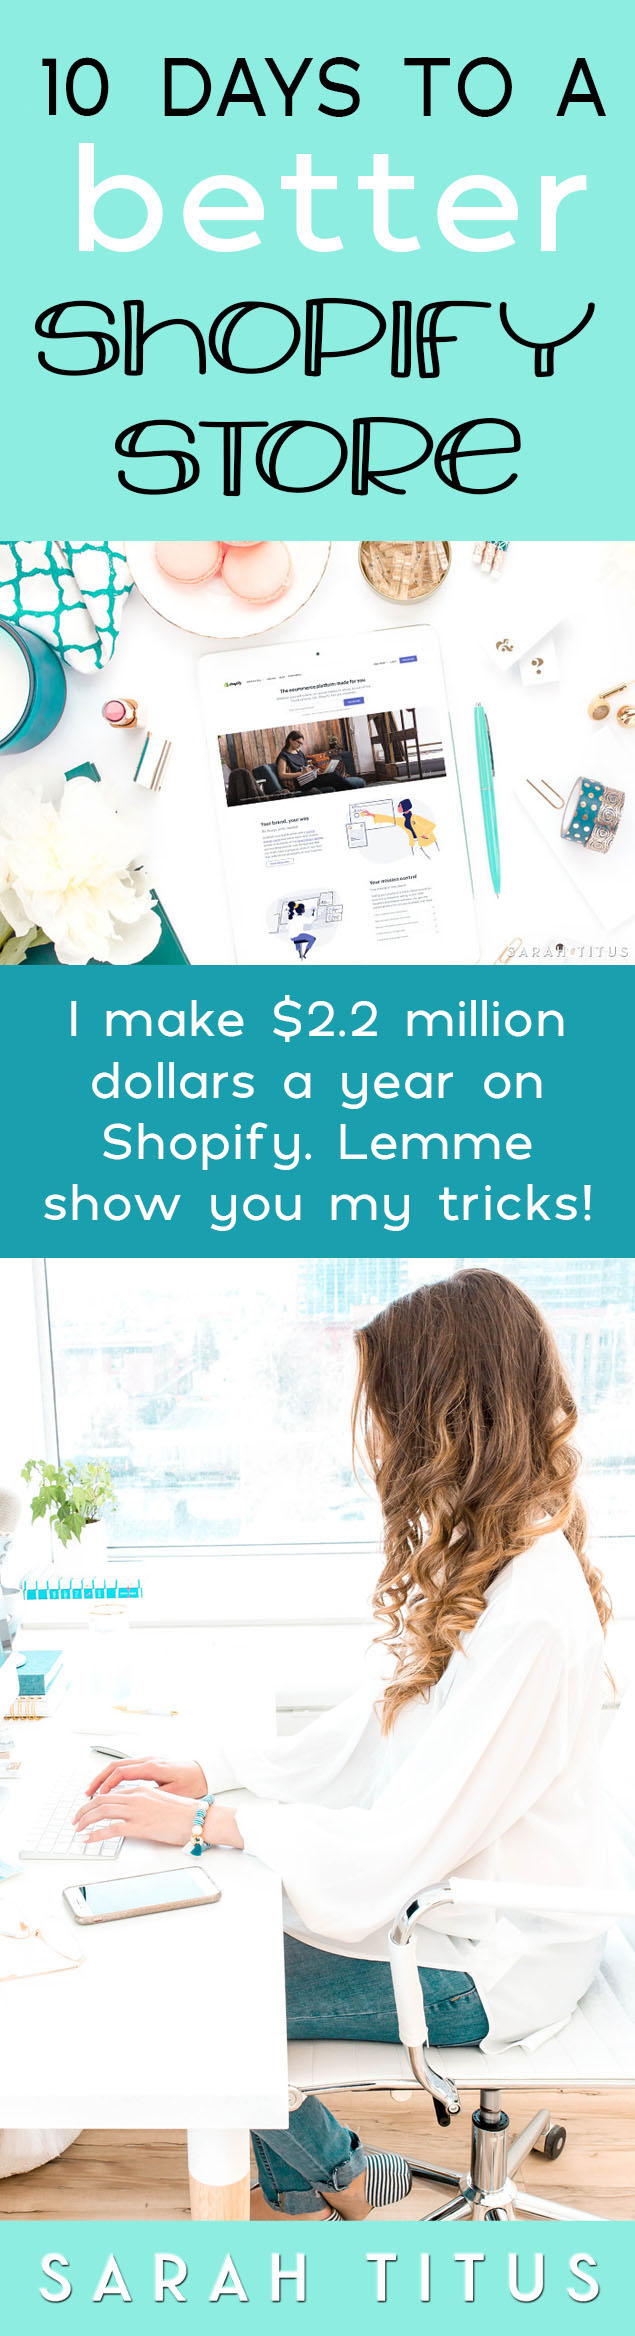 Within just 4 months on Shopify, I hit 6-figures/month without ANY paid advertising or cheap tricks. I'm now running a 7-figure/year business and I believe having your own store is an undiscovered money-making machine that most people don't even know about! #shopify #shopifystore #shopifytraining #shopifyseries